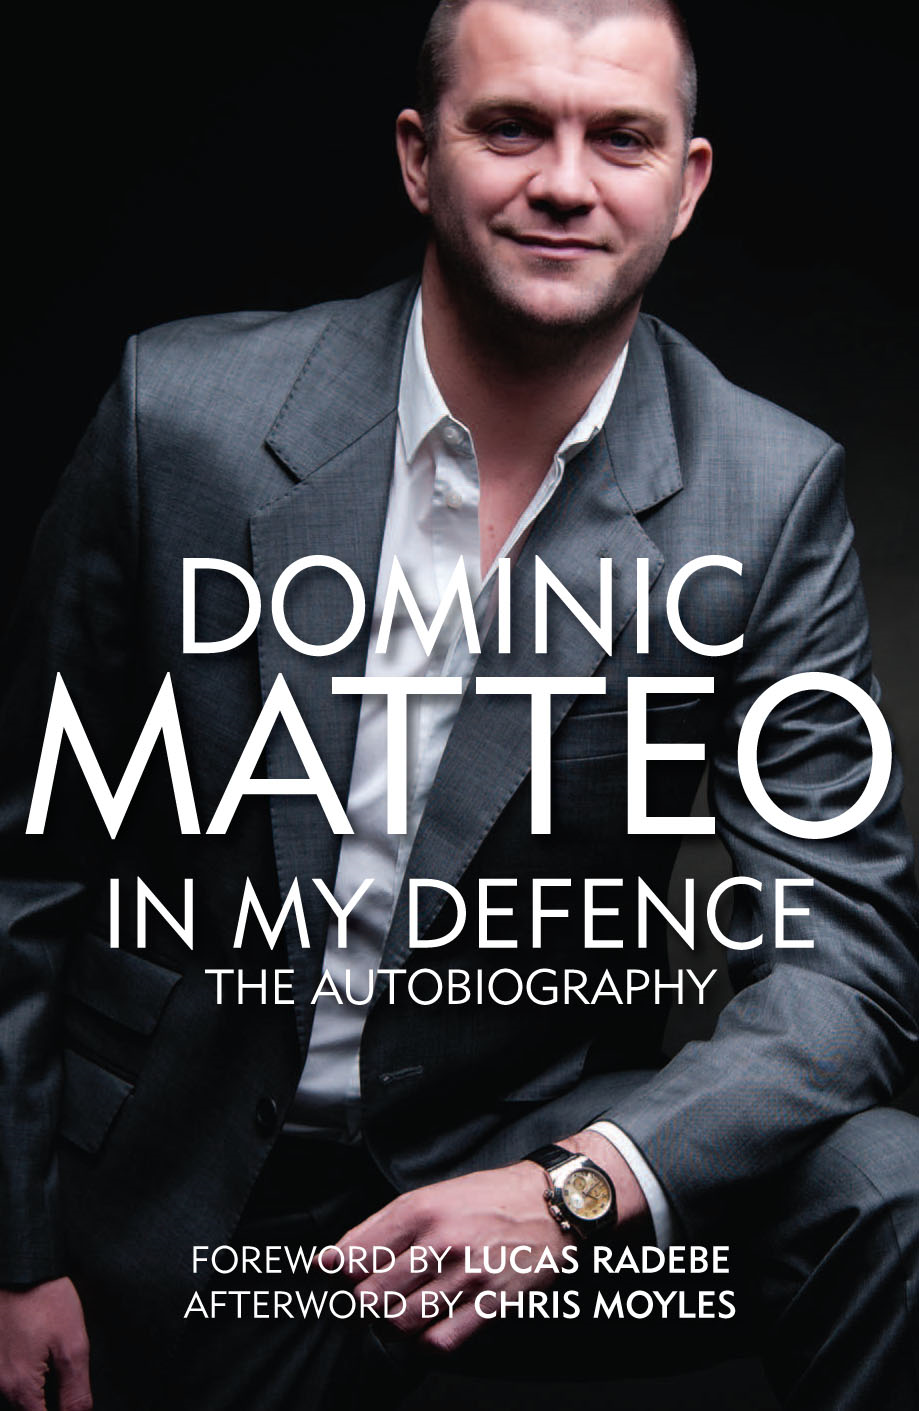 DOMINIC MATTEO -  IN MY DEFENCE